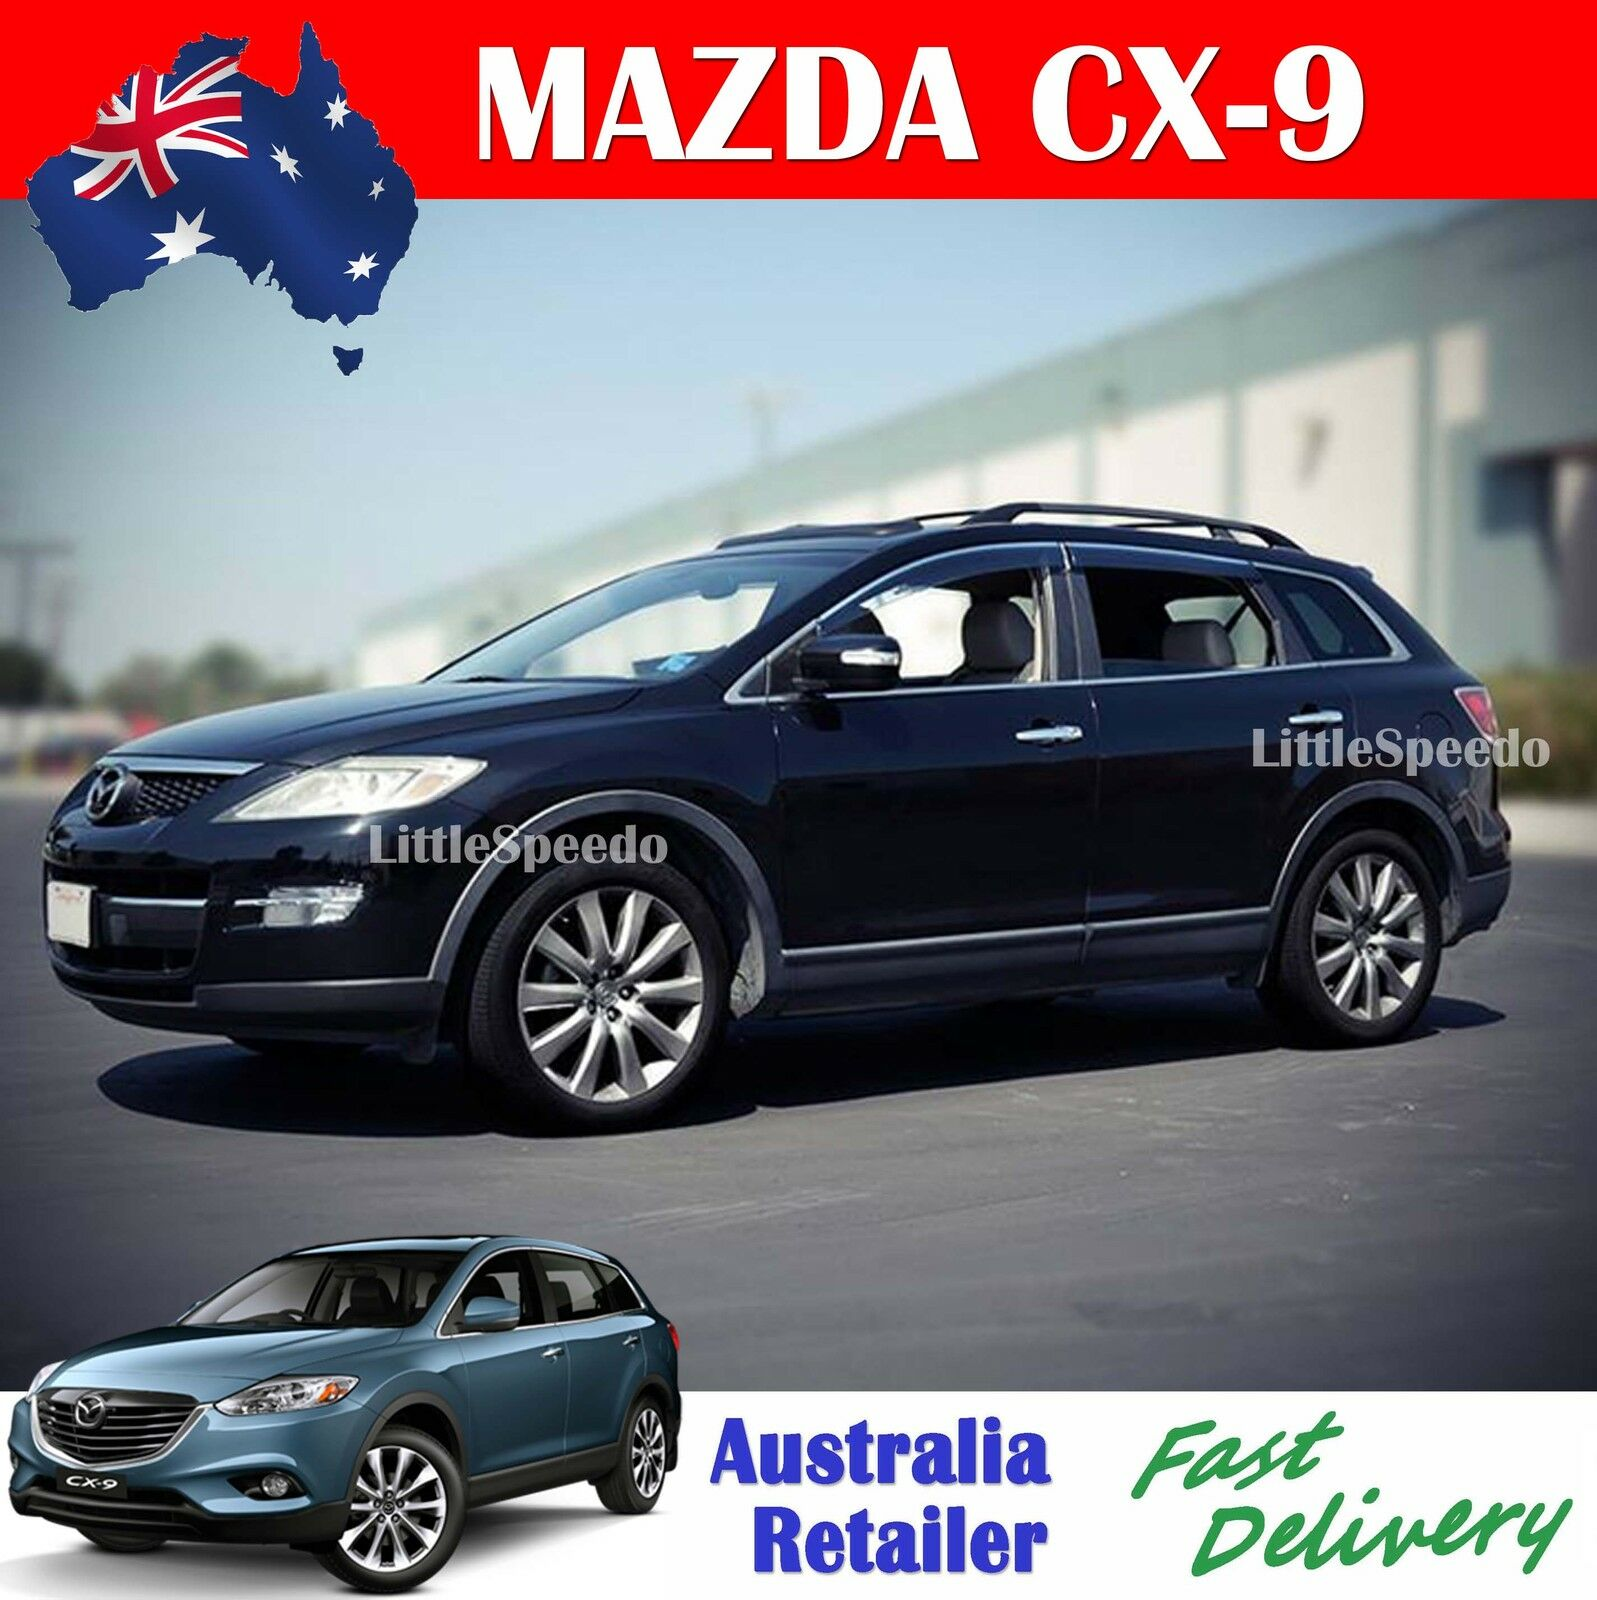 premium injection molded mazda cx9 weather shields weathershields window visor. Black Bedroom Furniture Sets. Home Design Ideas